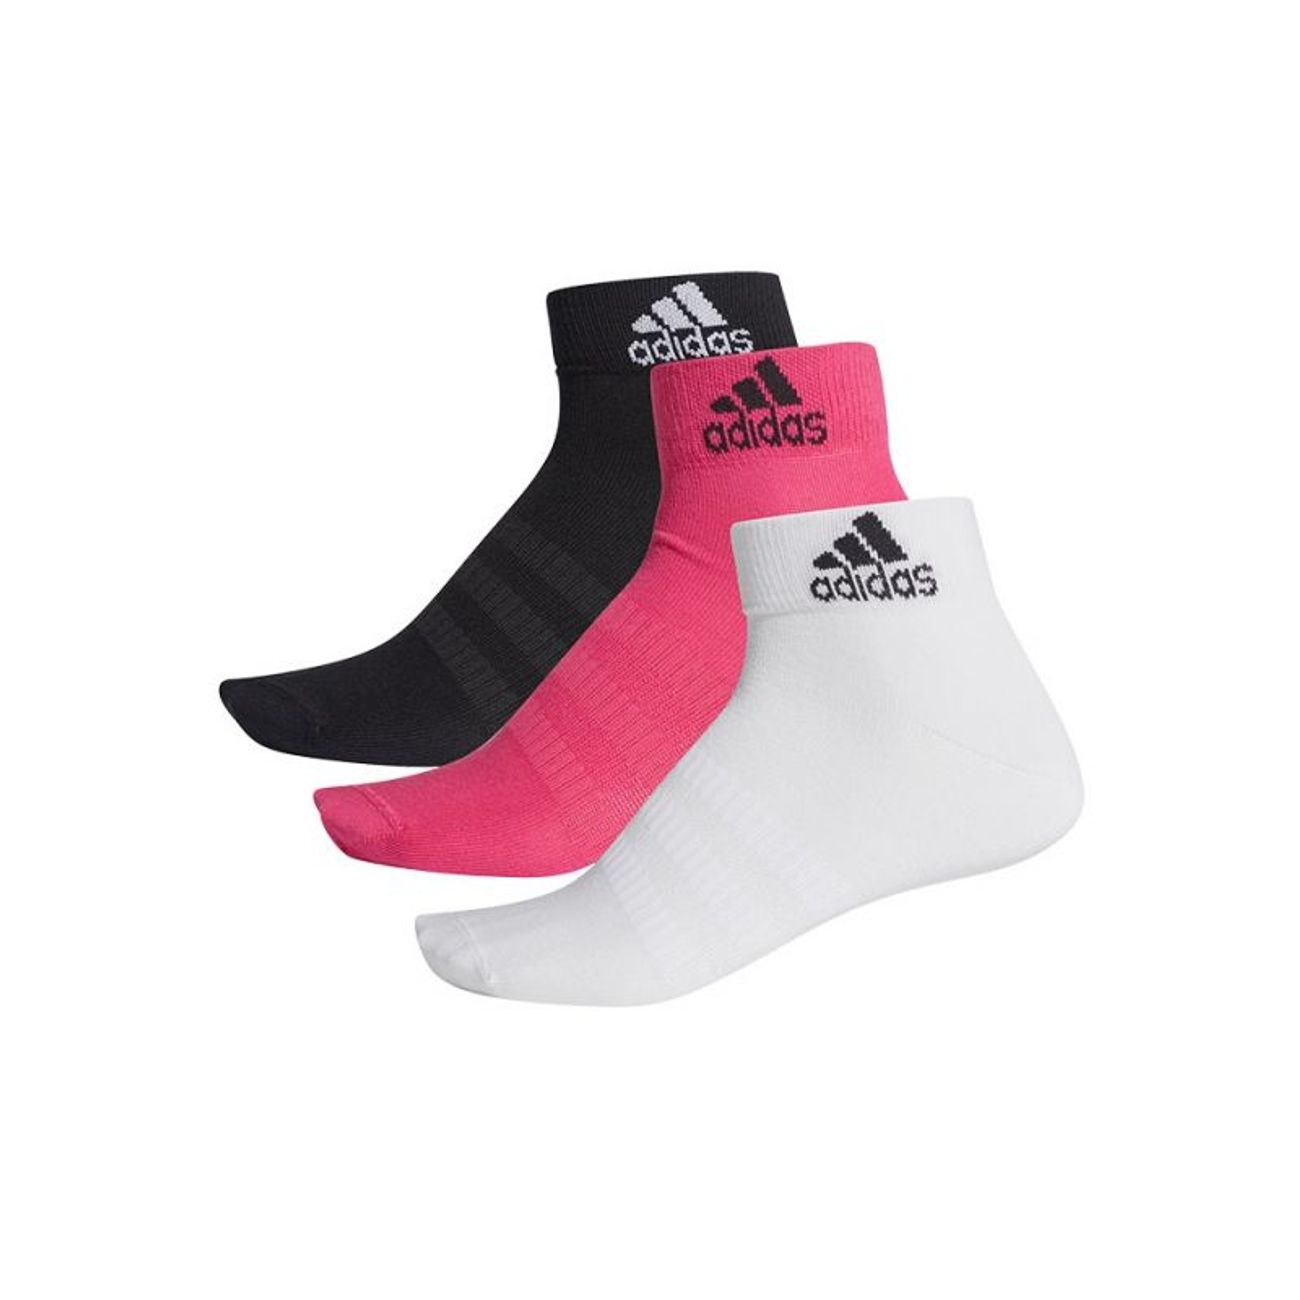 Fitness adulte ADIDAS Chaussettes adidas Ankle 3 Pairs